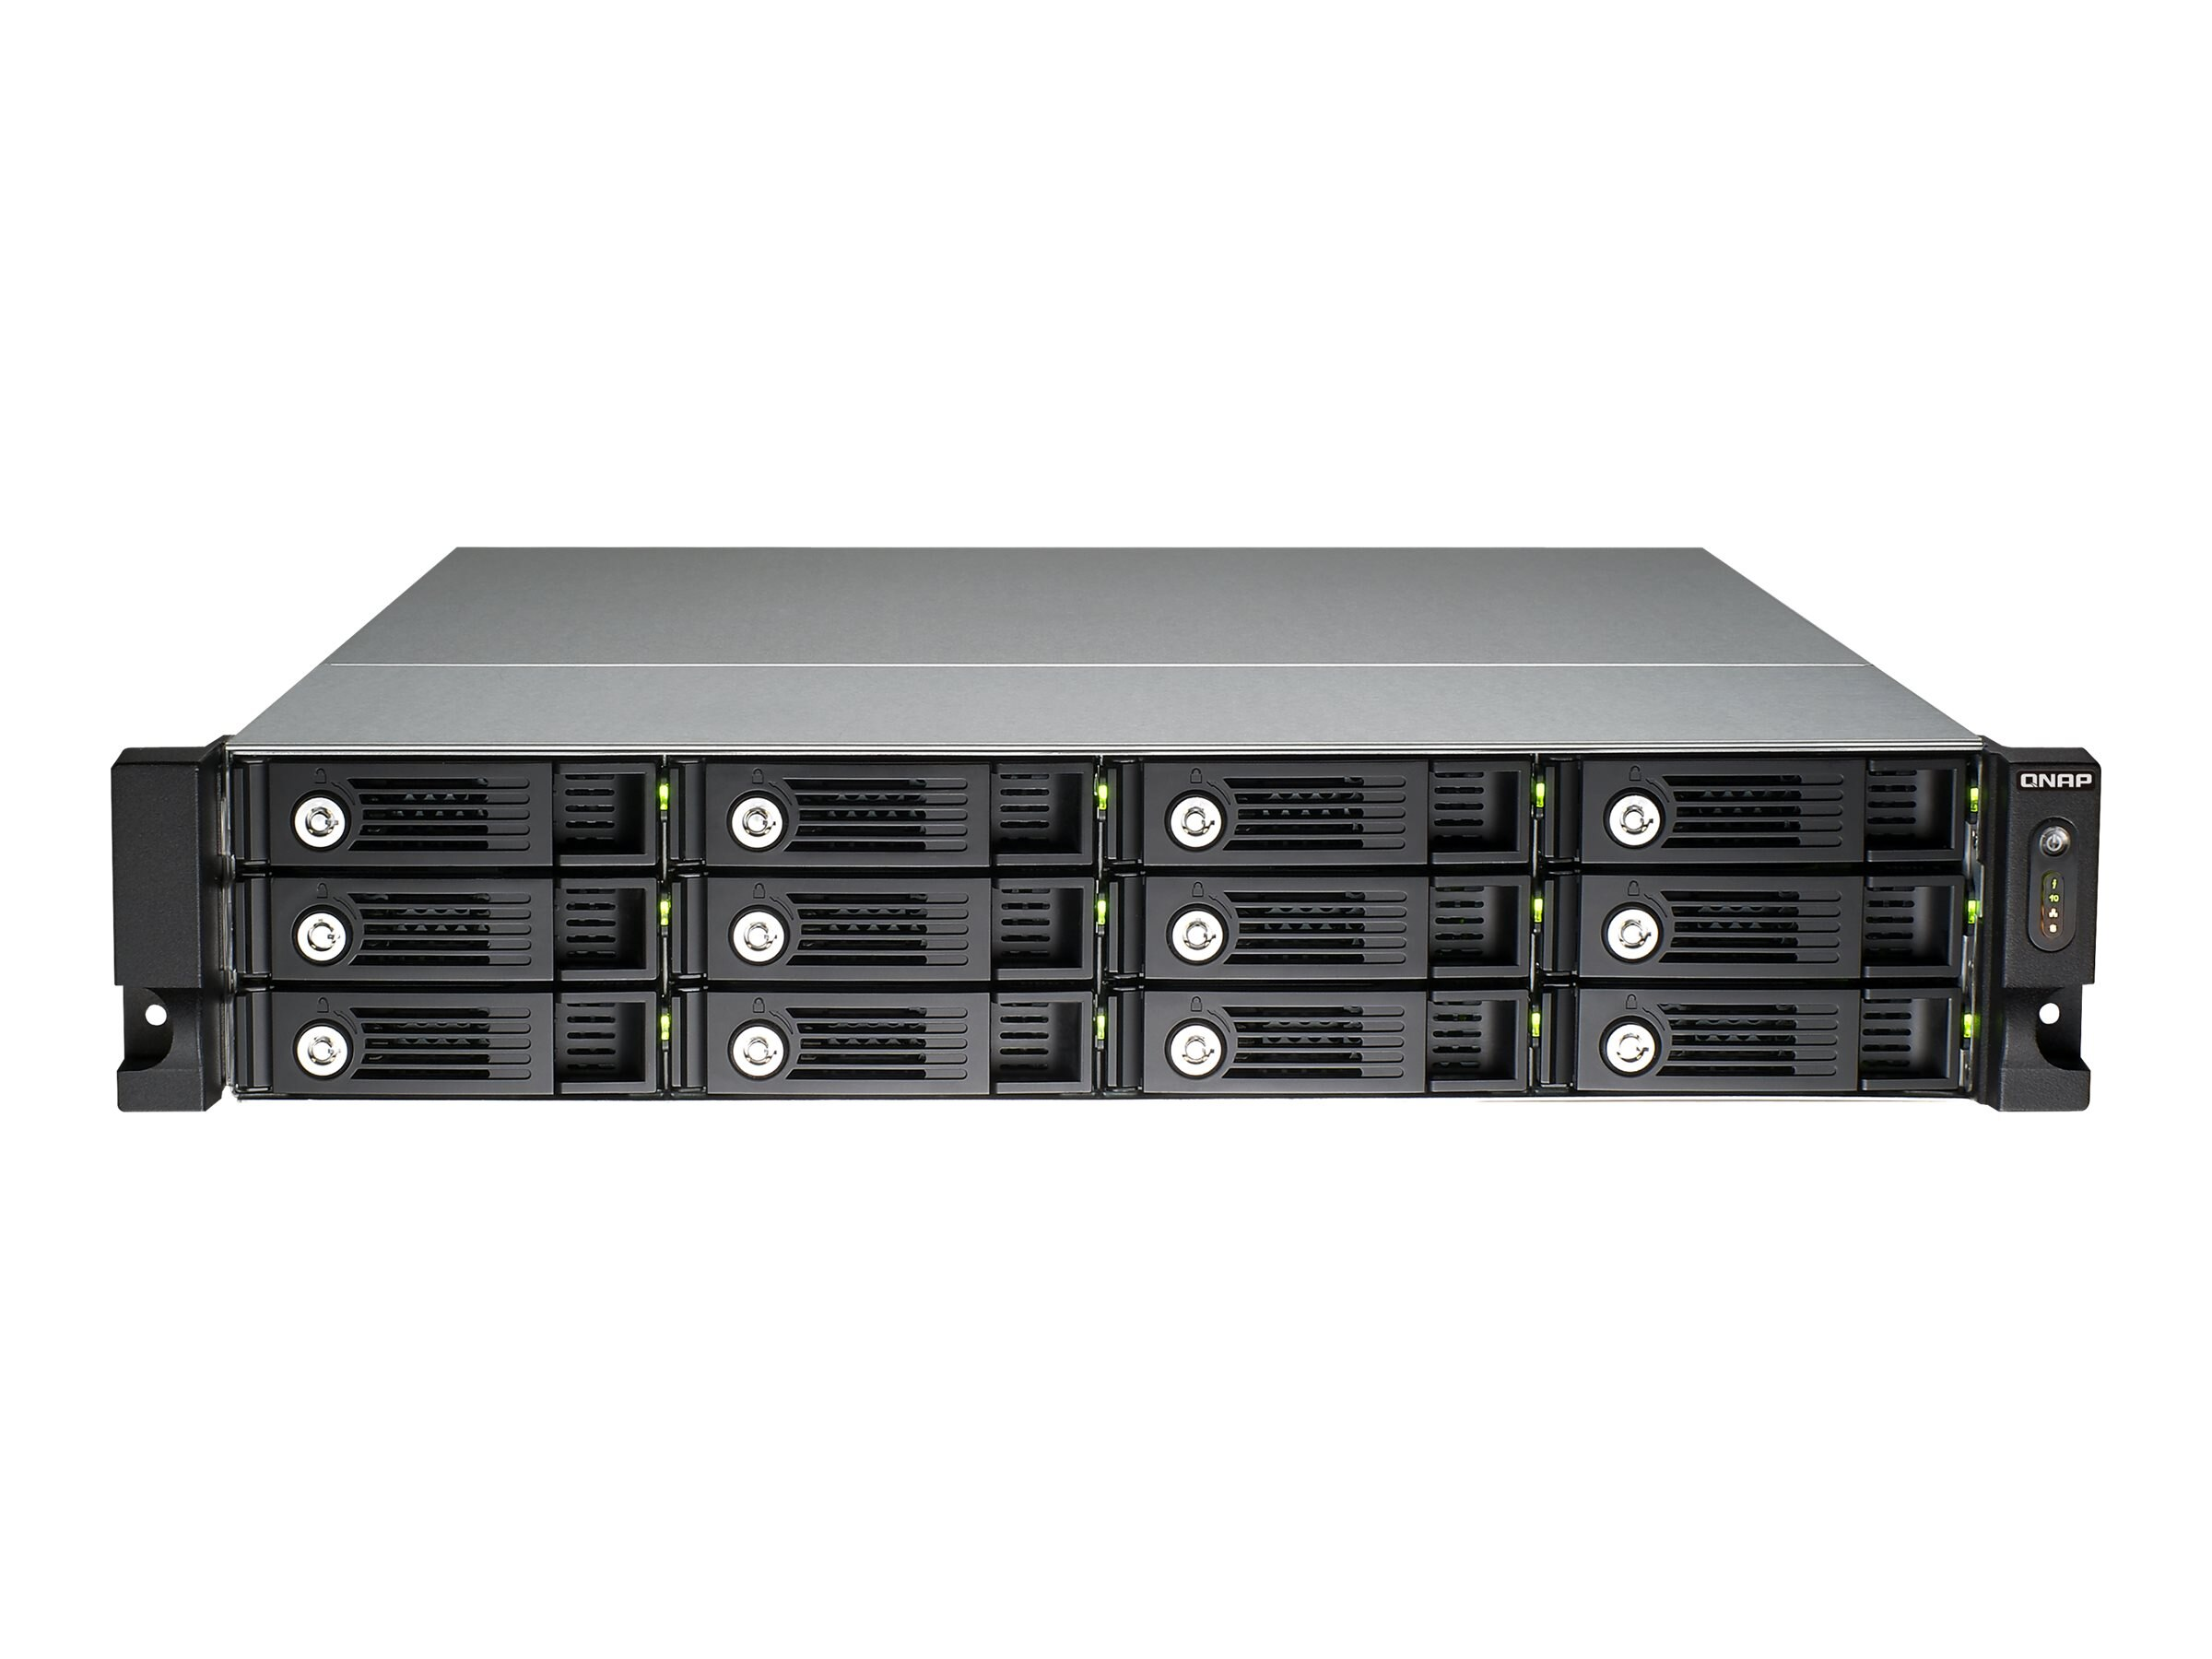 Qnap TVS-1271U-RP 12-bay High Performance Unified Storage w  32GB RAM, TVS-1271U-RP-I7-32G-US